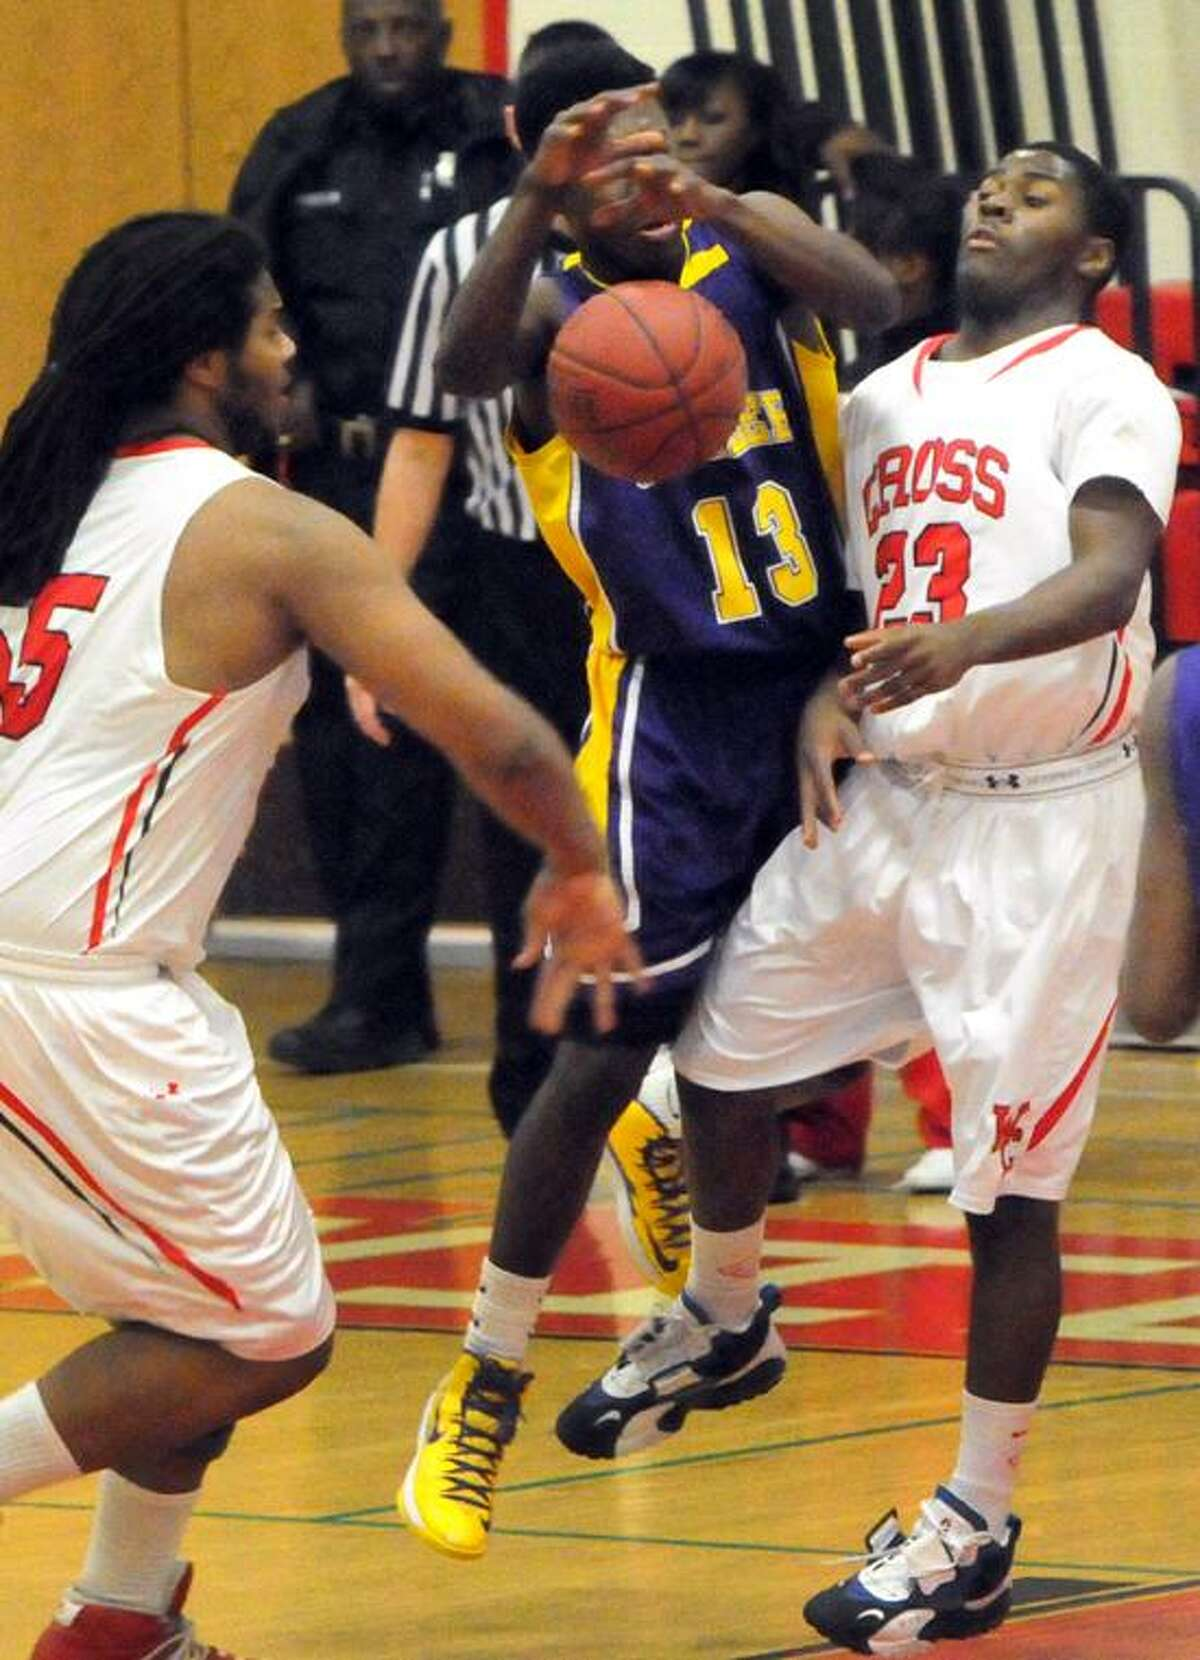 Jaelin Robinson, left, and teammate Jaylin Fuller, right, play tough defense against Amos Ford of Career Thursday evening. Cross remained No. 8 in the latest Register Top 10 poll. Photo by Peter Hvizdak / New Haven Register.